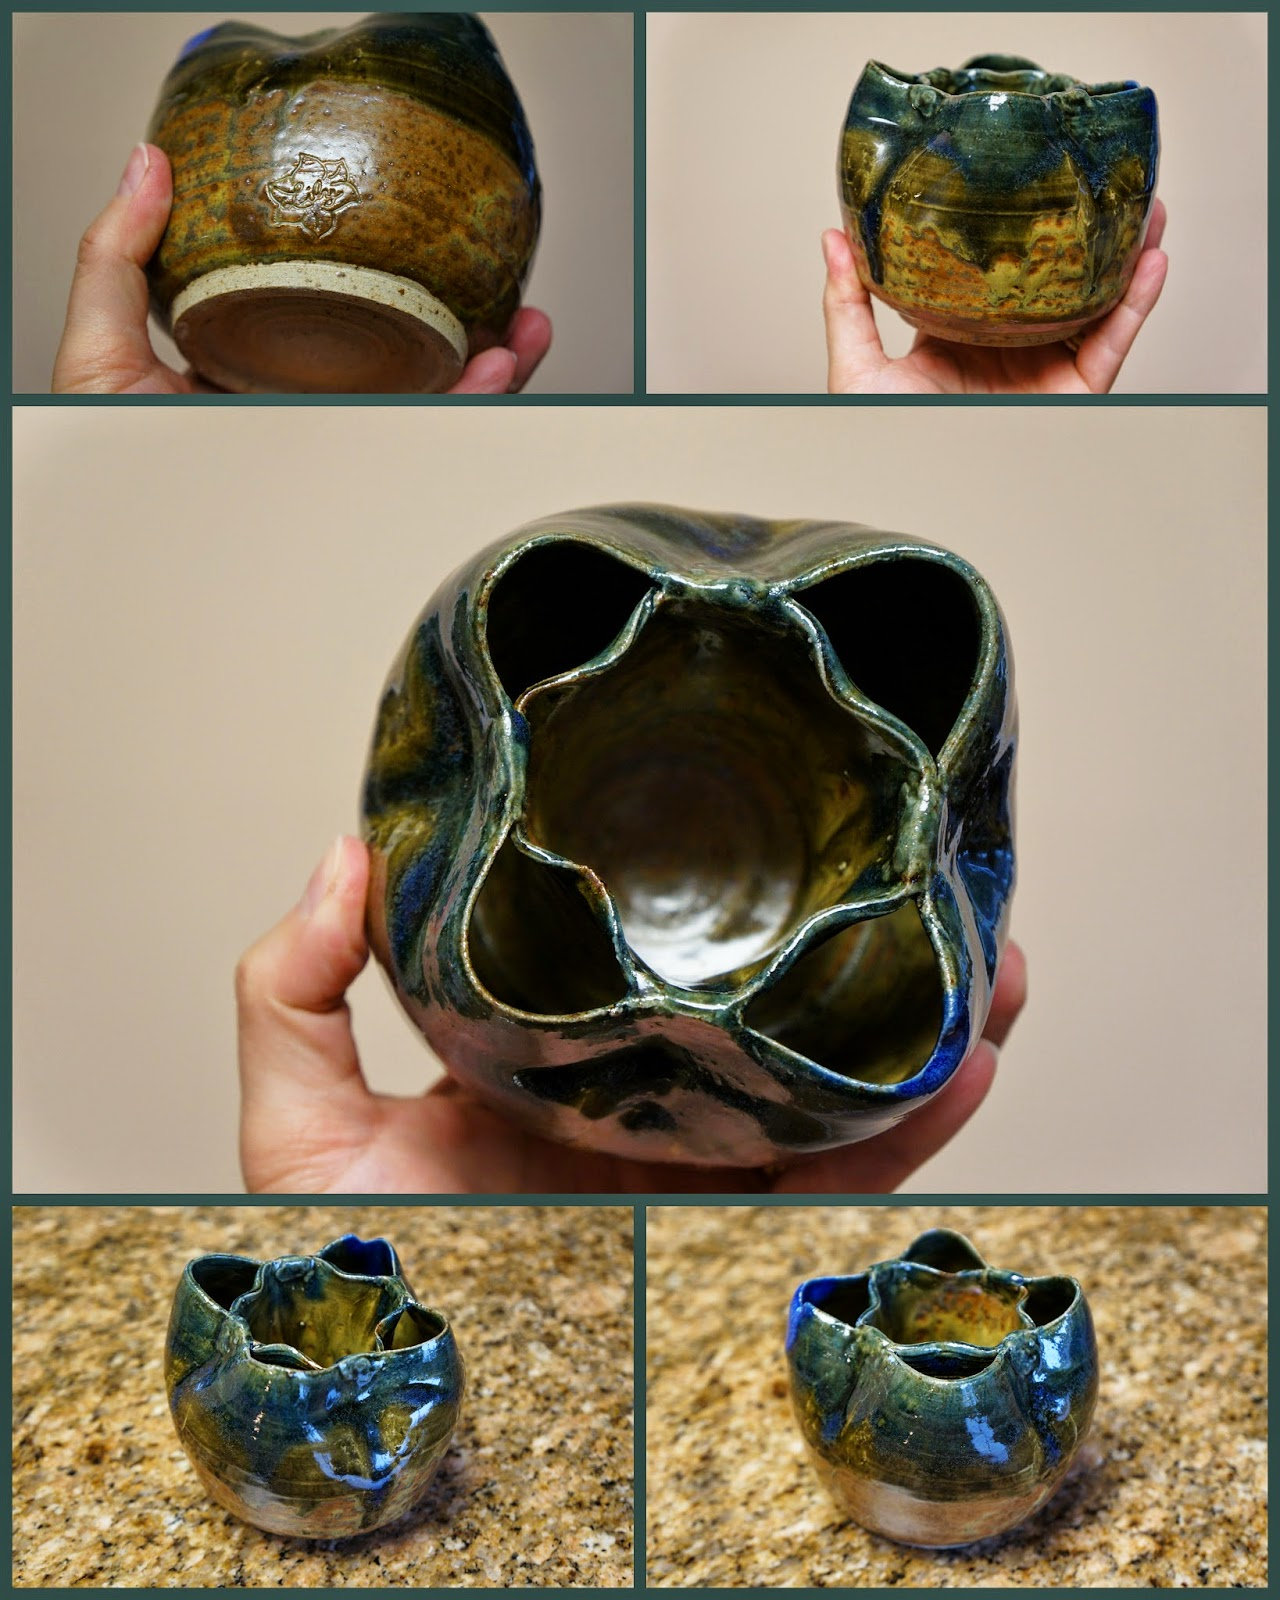 Unique handmade pottery / stoneware double walled thrown vase with multiple chambers.